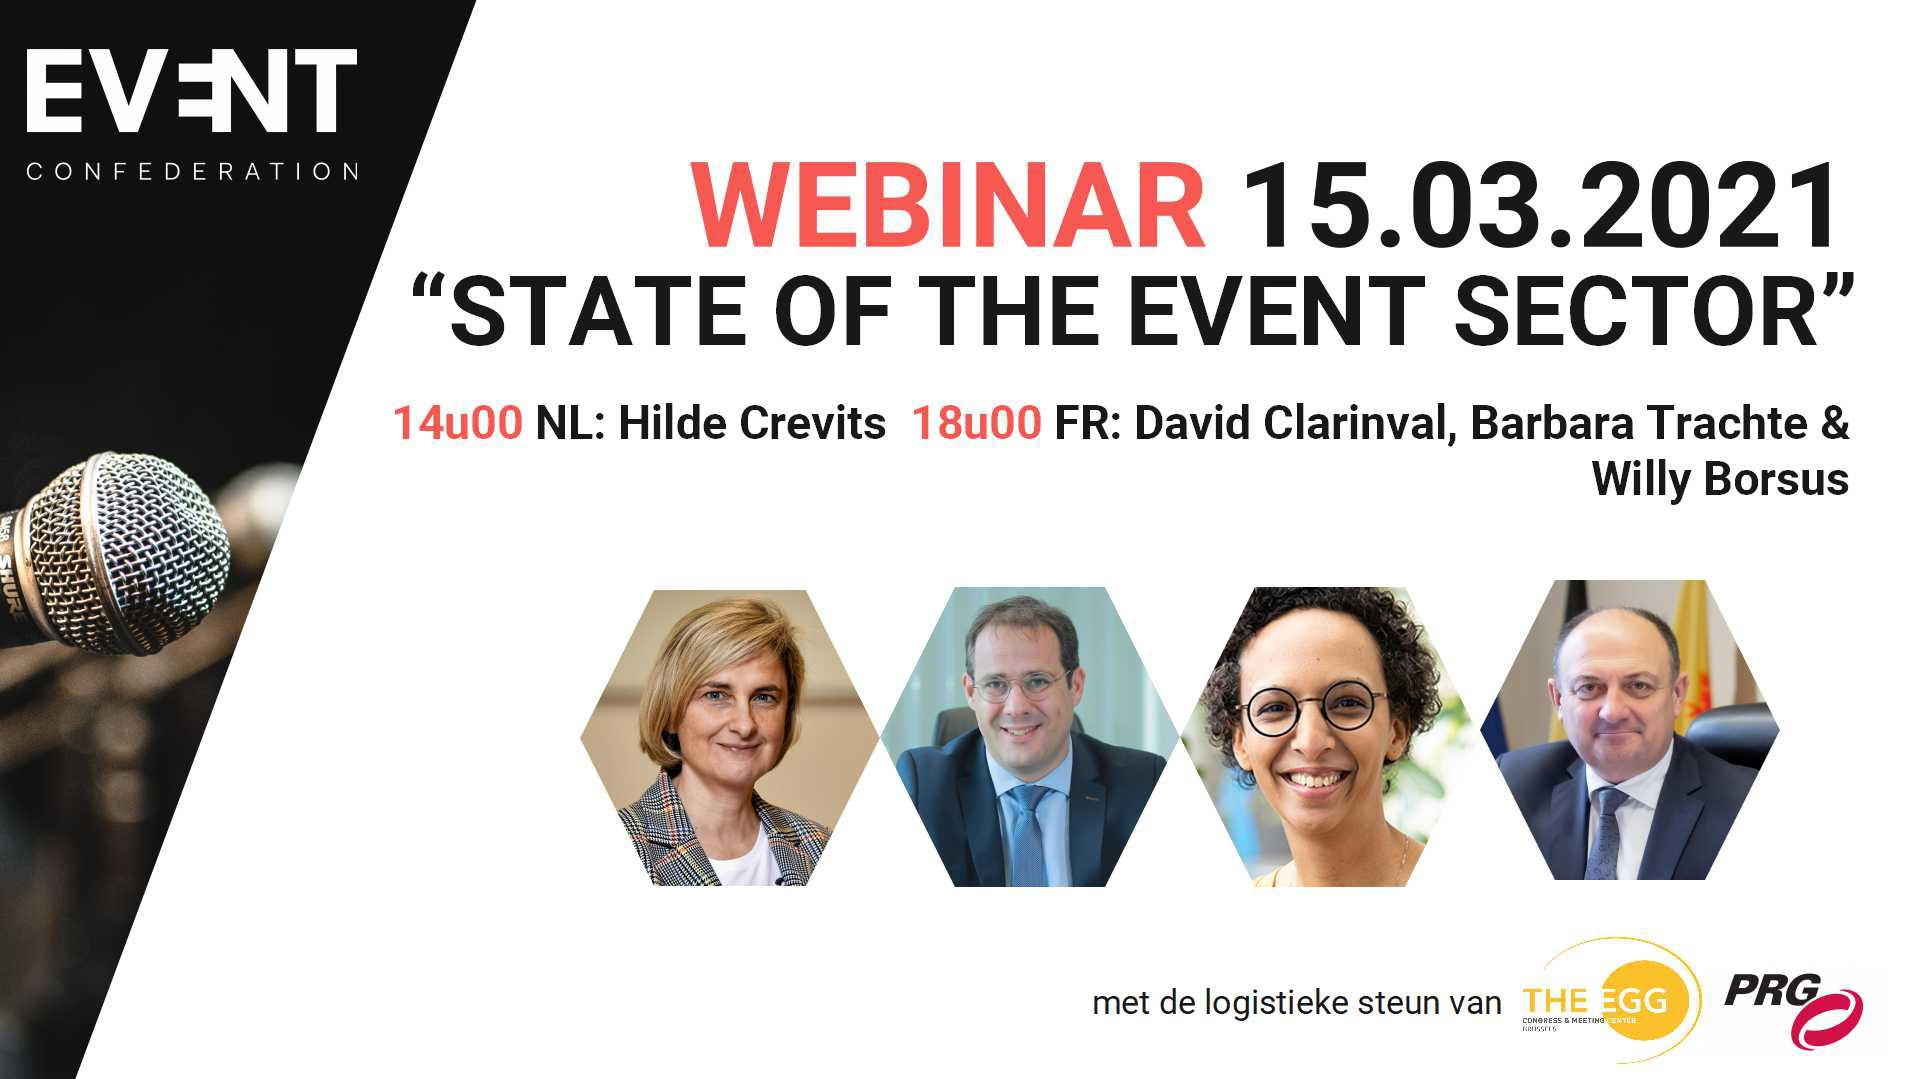 SAVE THE DATE! 15/03: 'State of the Event Sector' webinar met Hilde Crevits, David Clarinval, Barbara Trachte en Willy Borsus